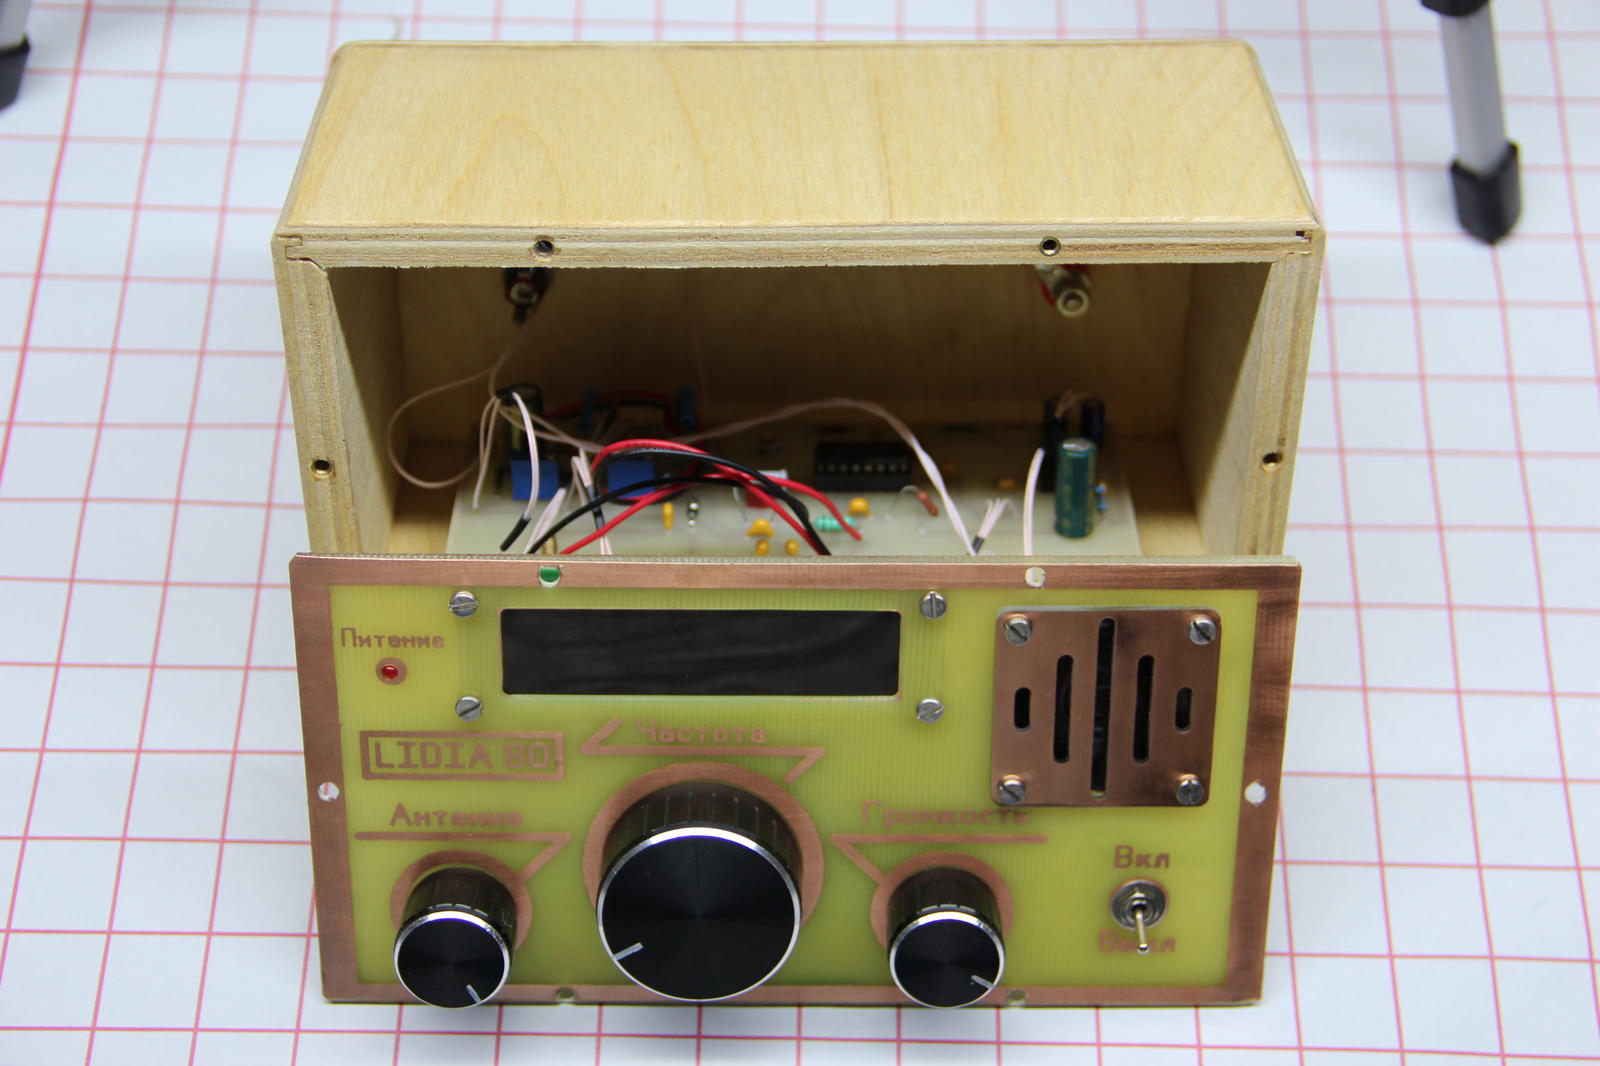 Radio Lidia-80 do-it-yourself receiver, frequency, tuning, range, made, quality, community, Board, allows, level, antenna, looks, used, assembled, size, quite, used, brass, use, receiver